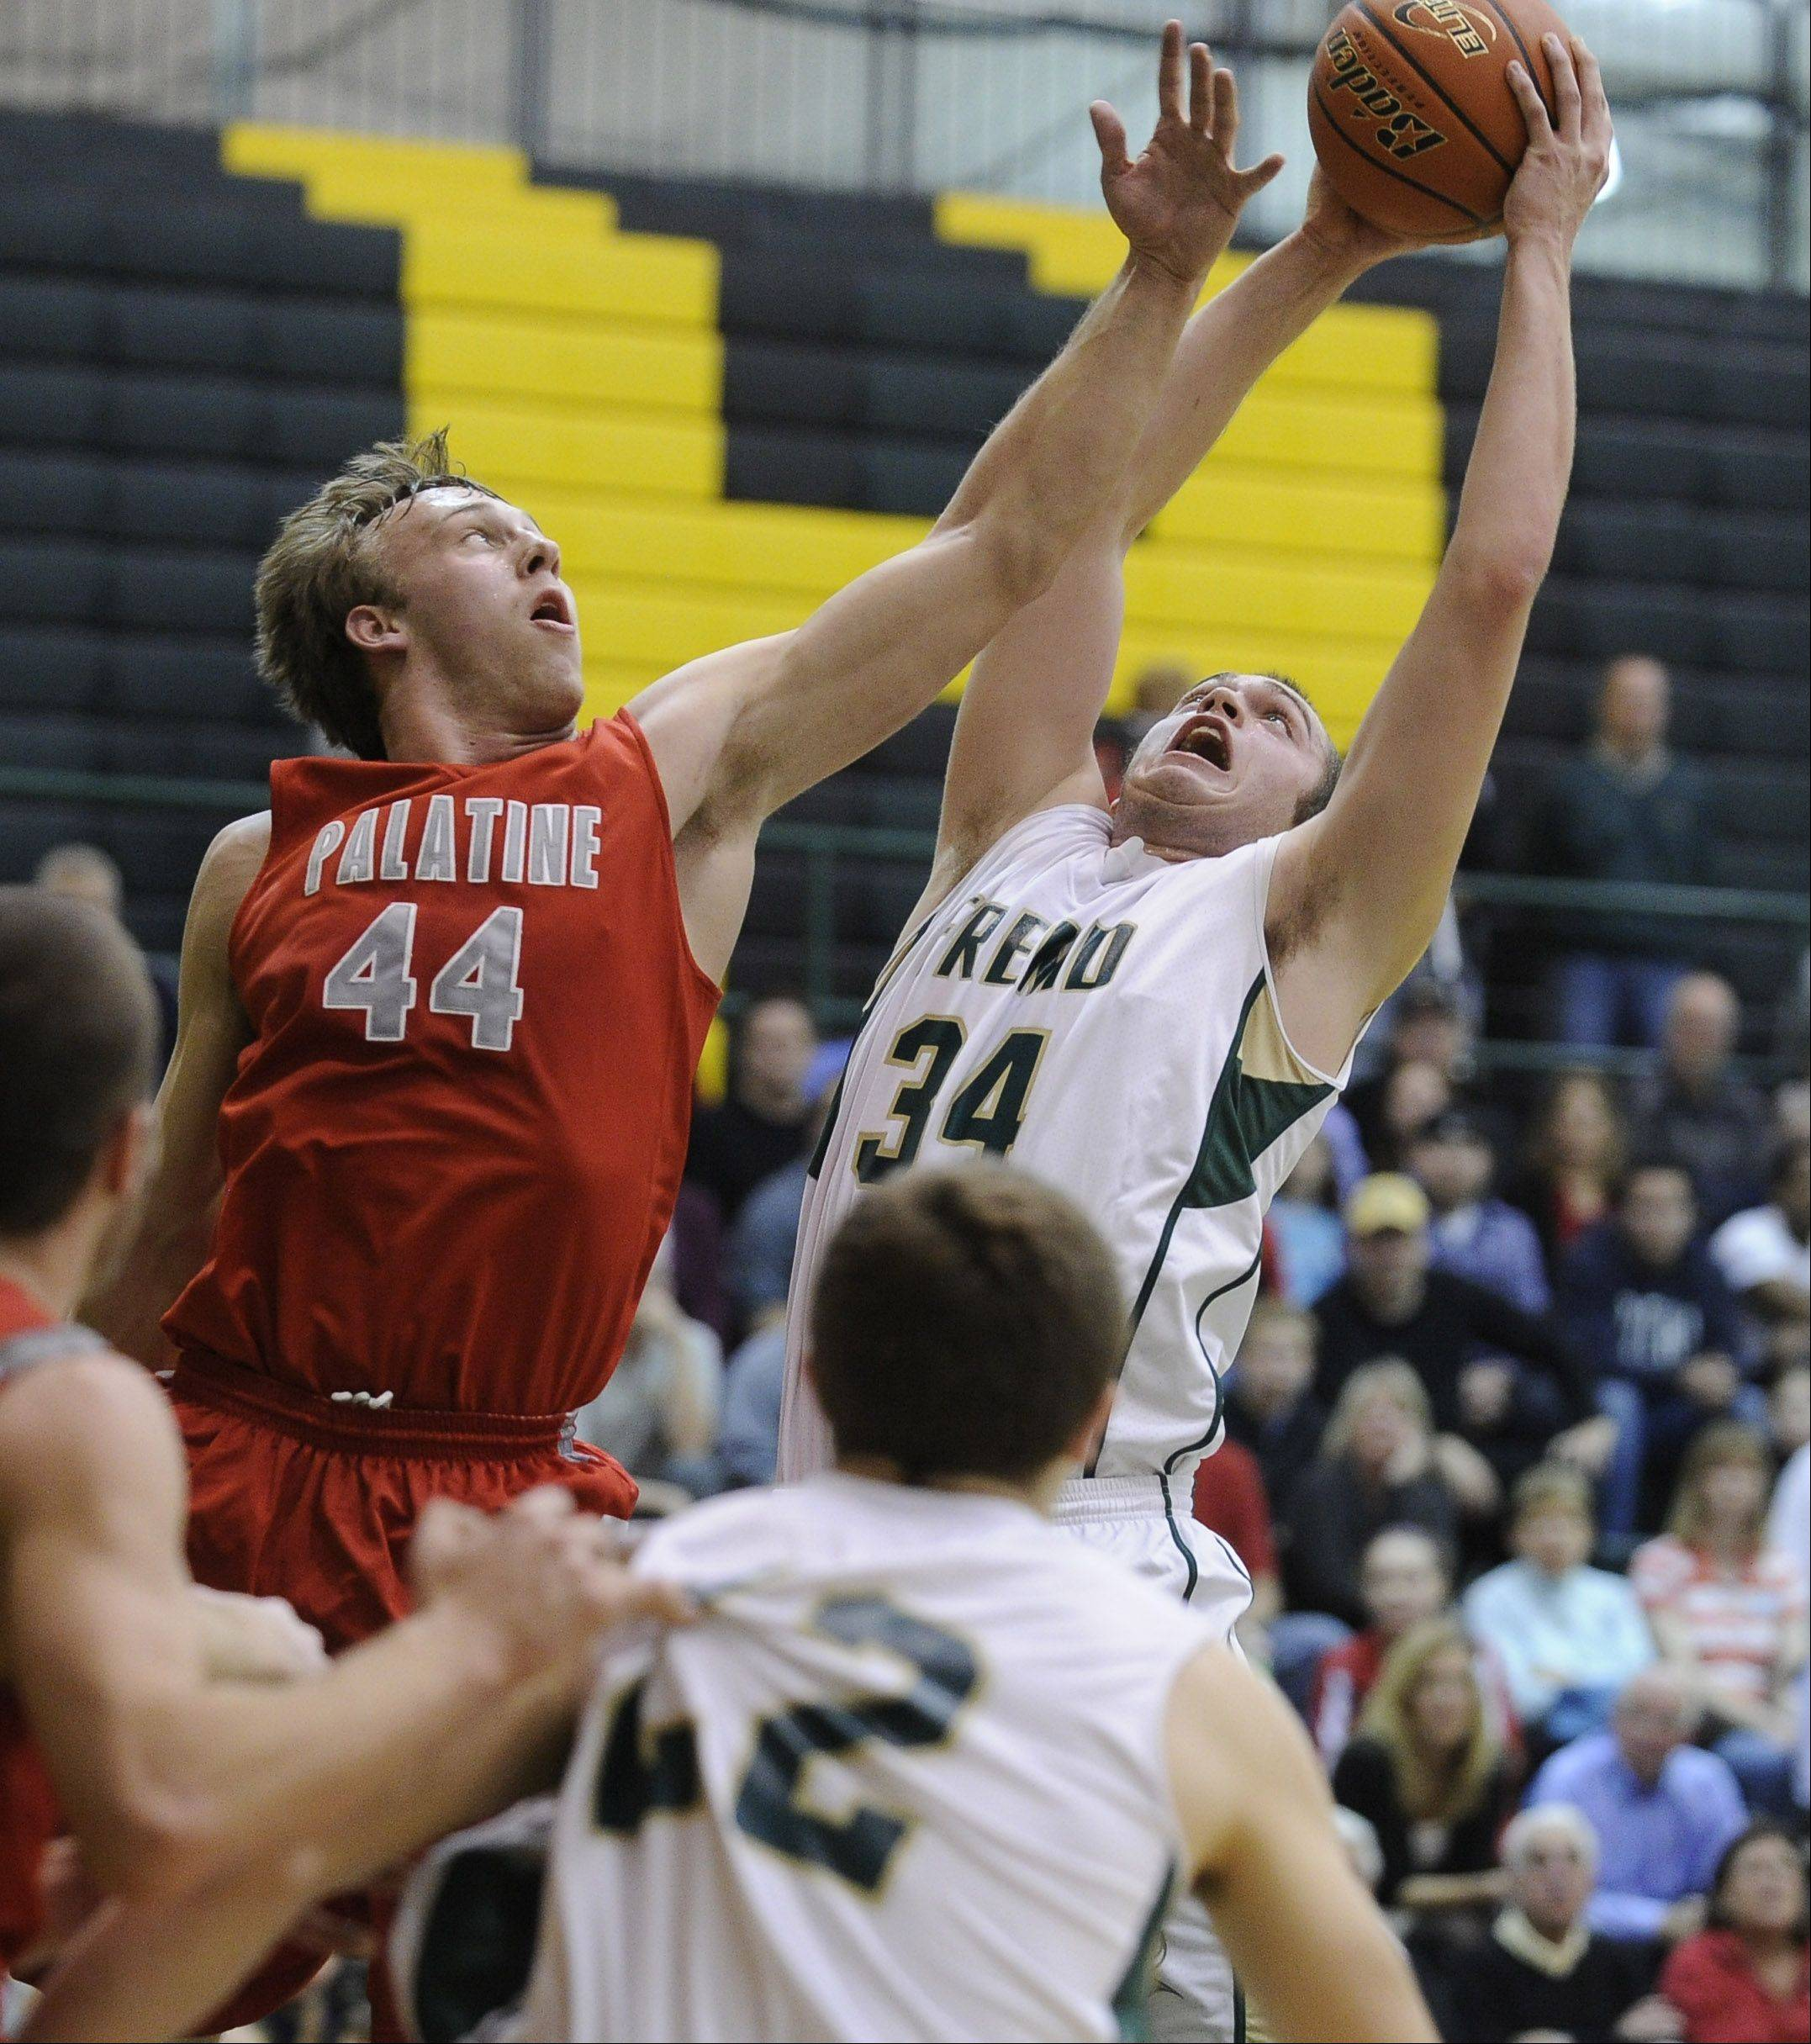 Palatine's Josh Baldus and Fremd's Ben Carlson battle for the rebound in the first half.